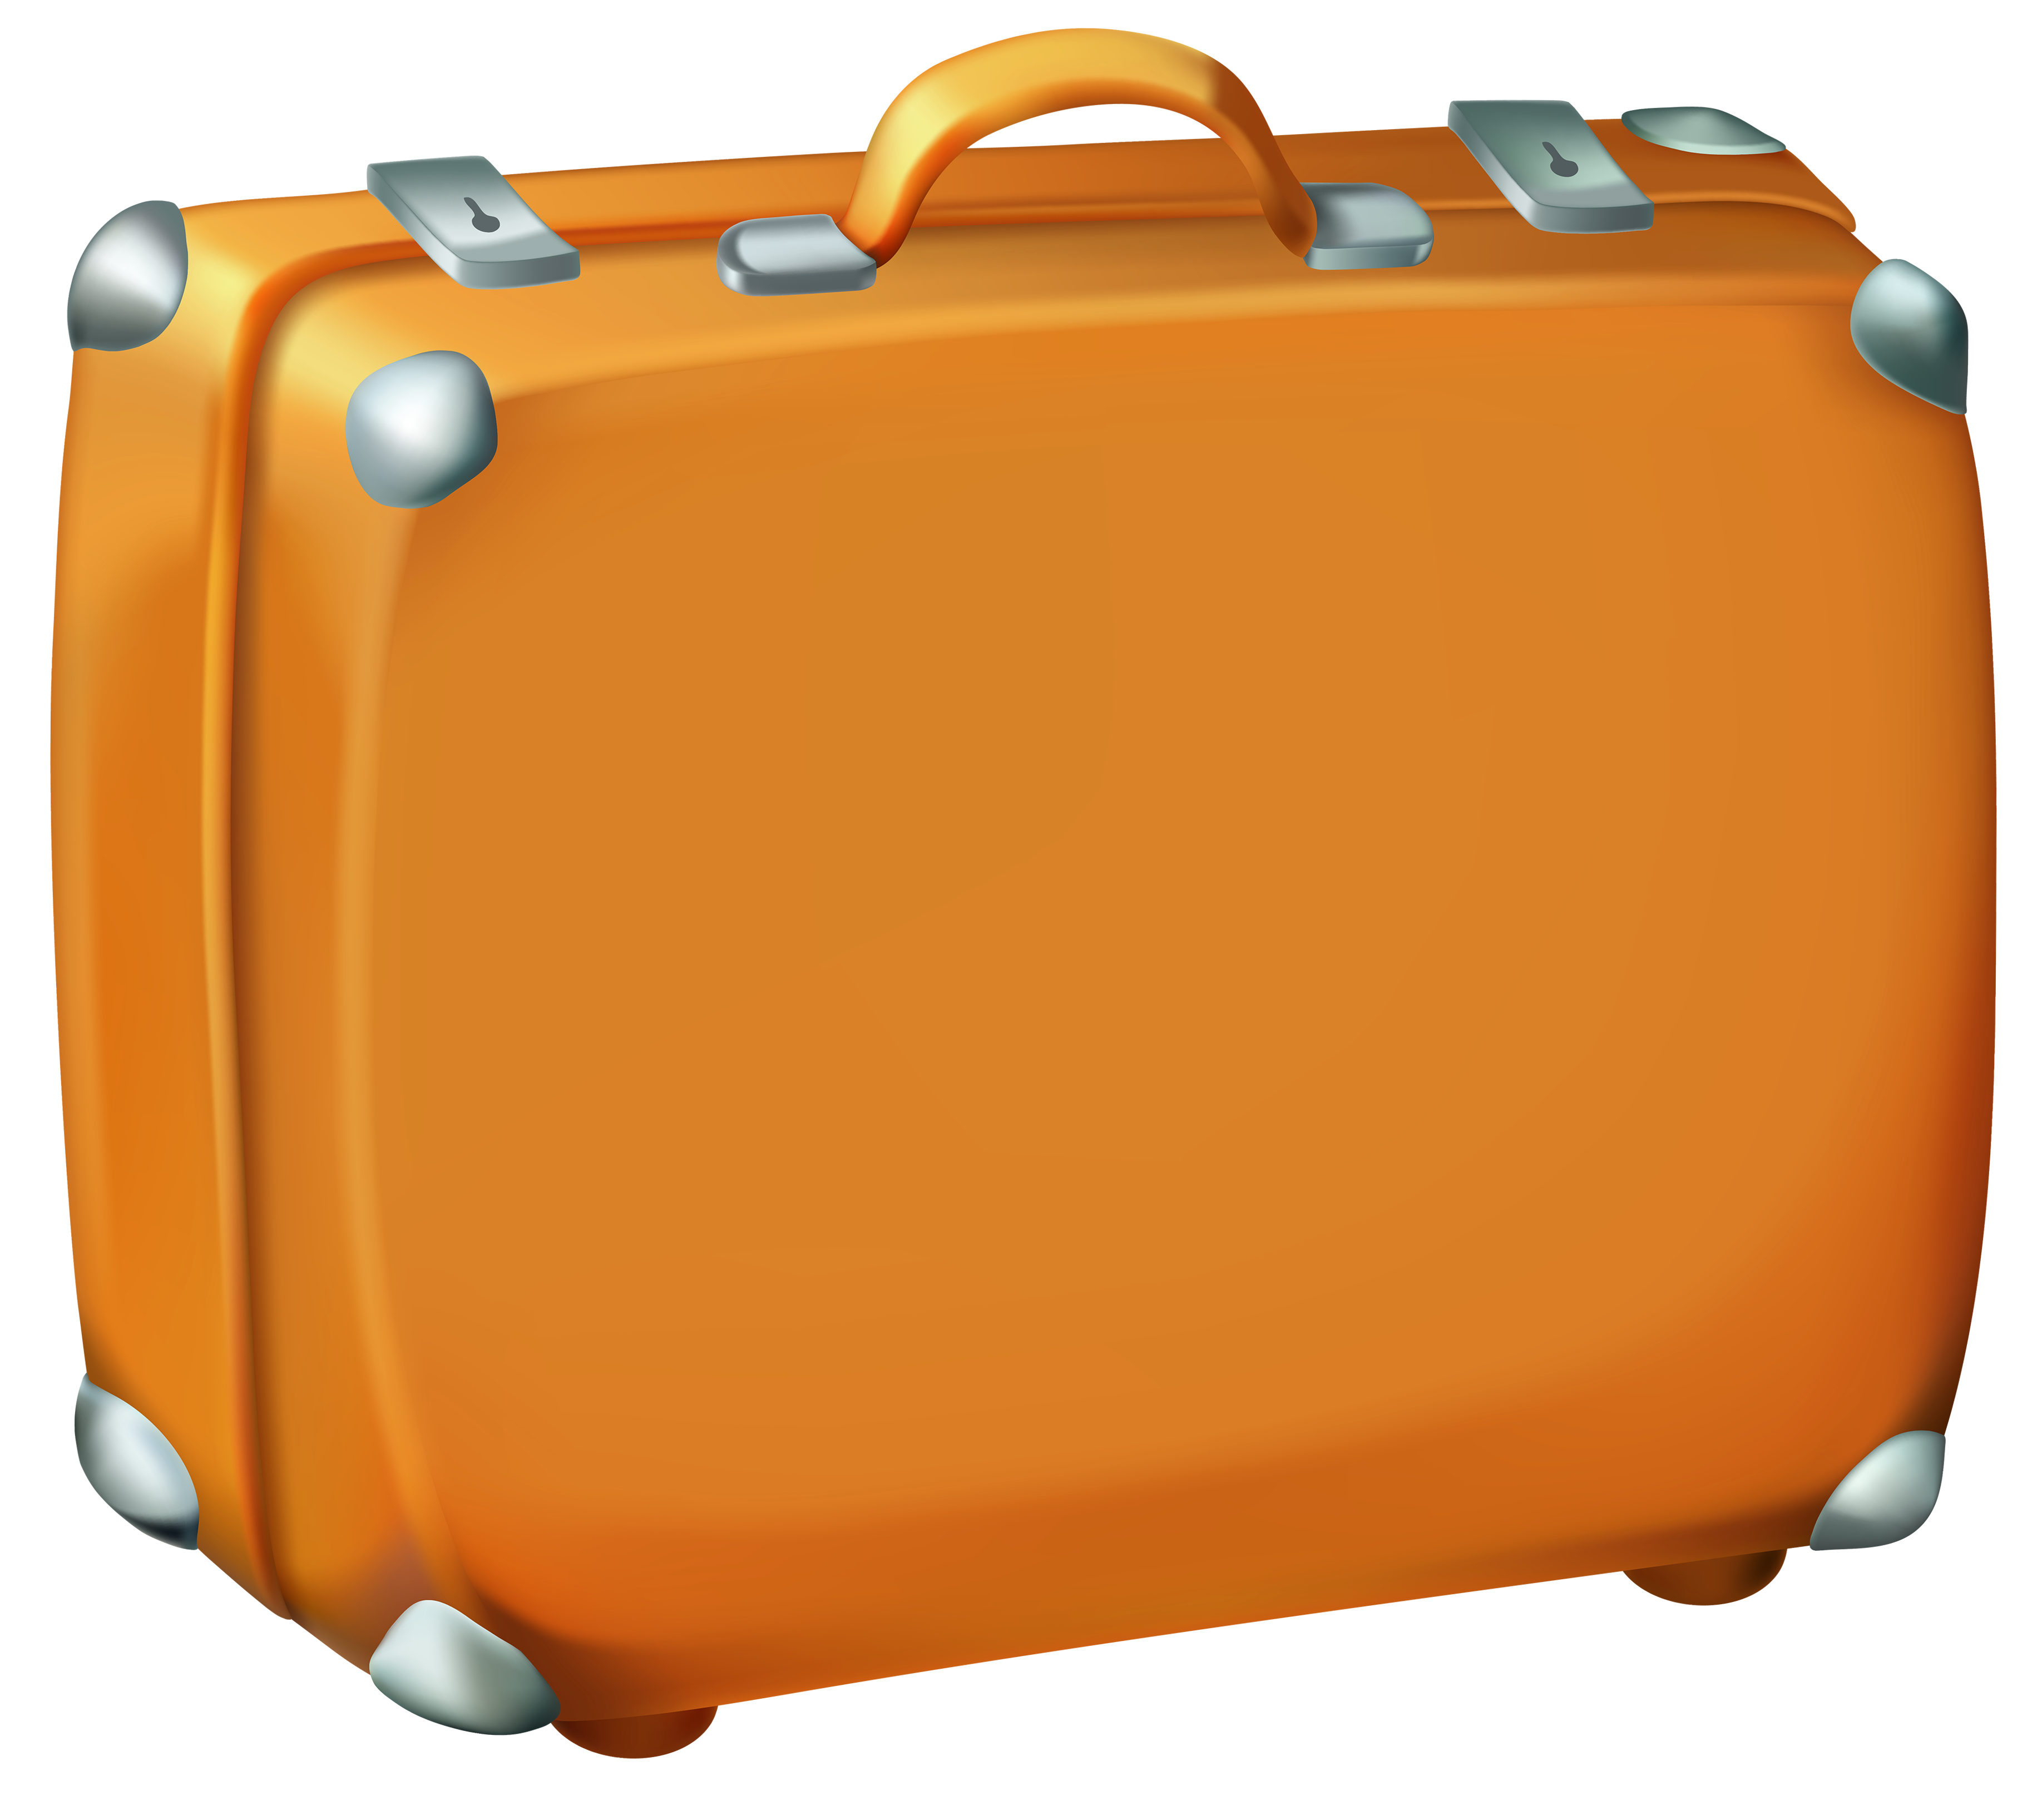 Brown suitcase image gallery. Stamp clipart luggage